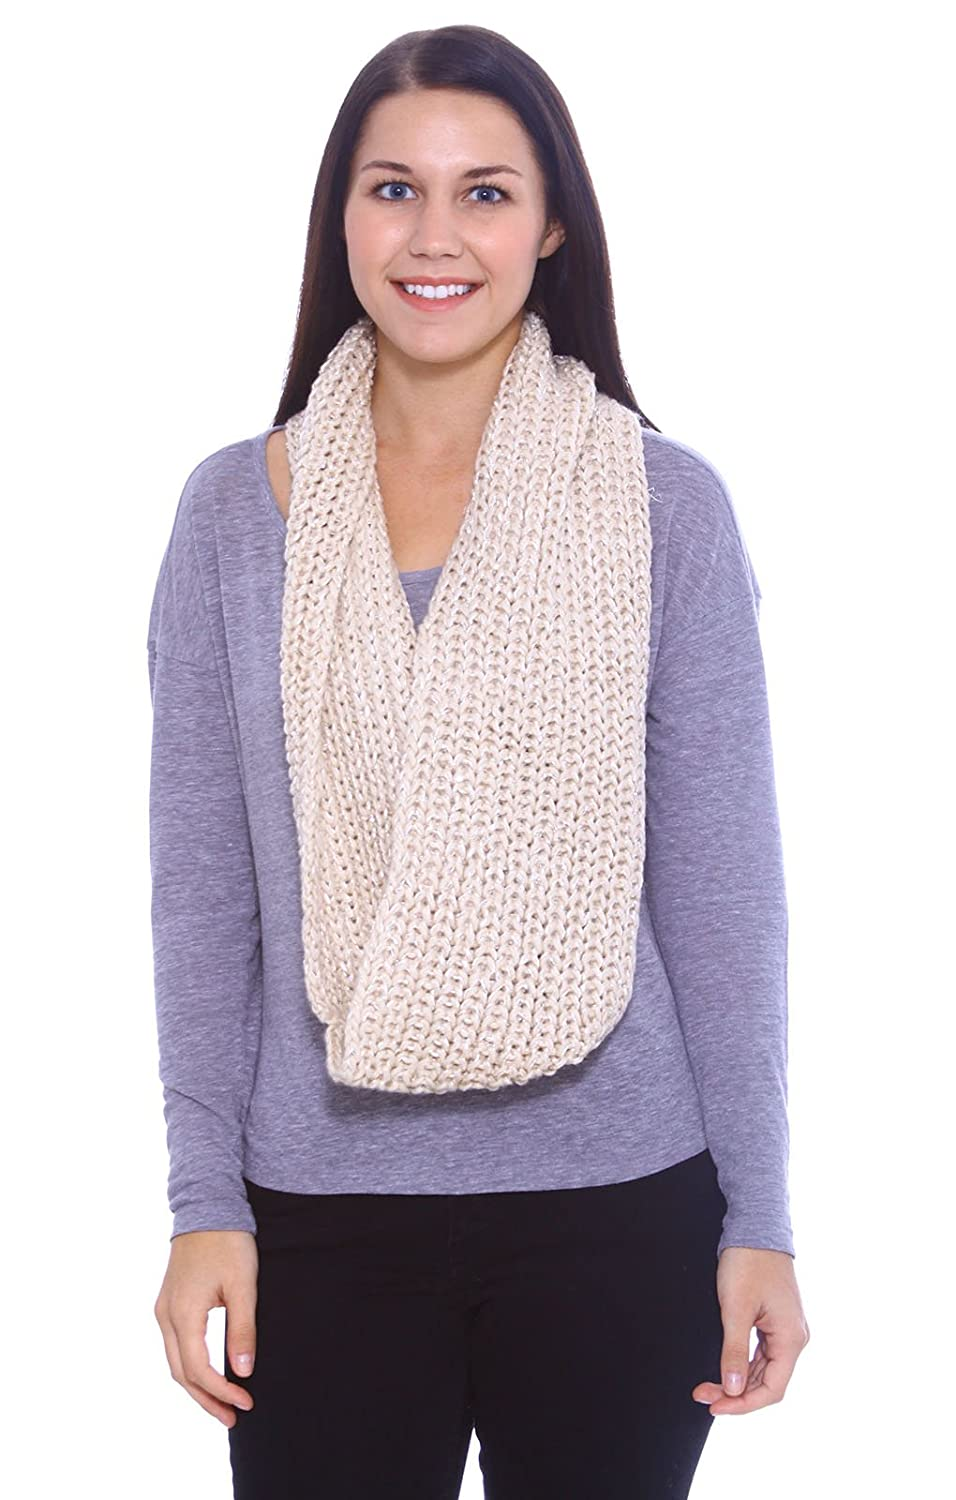 225284bb6 Womens InfinitySoft Winter Warm Thick Knitted Circle Loop Scarf Beige at  Amazon Women's Clothing store: